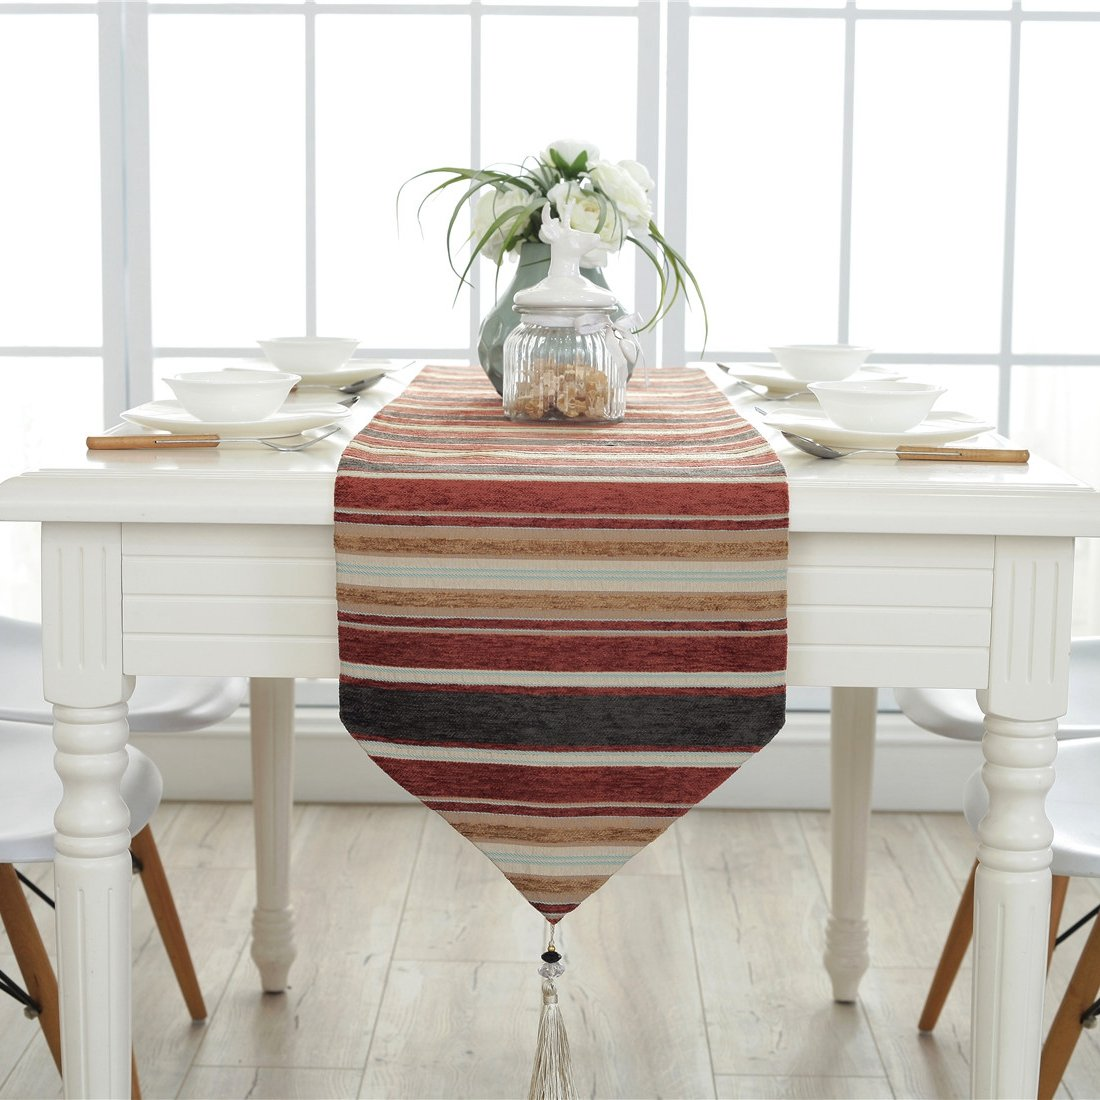 Amazon com ethomes colorful stripes fabric table runner for home outdoor kitchen dining room decor 13 x 82 inches33 x 210cm home kitchen